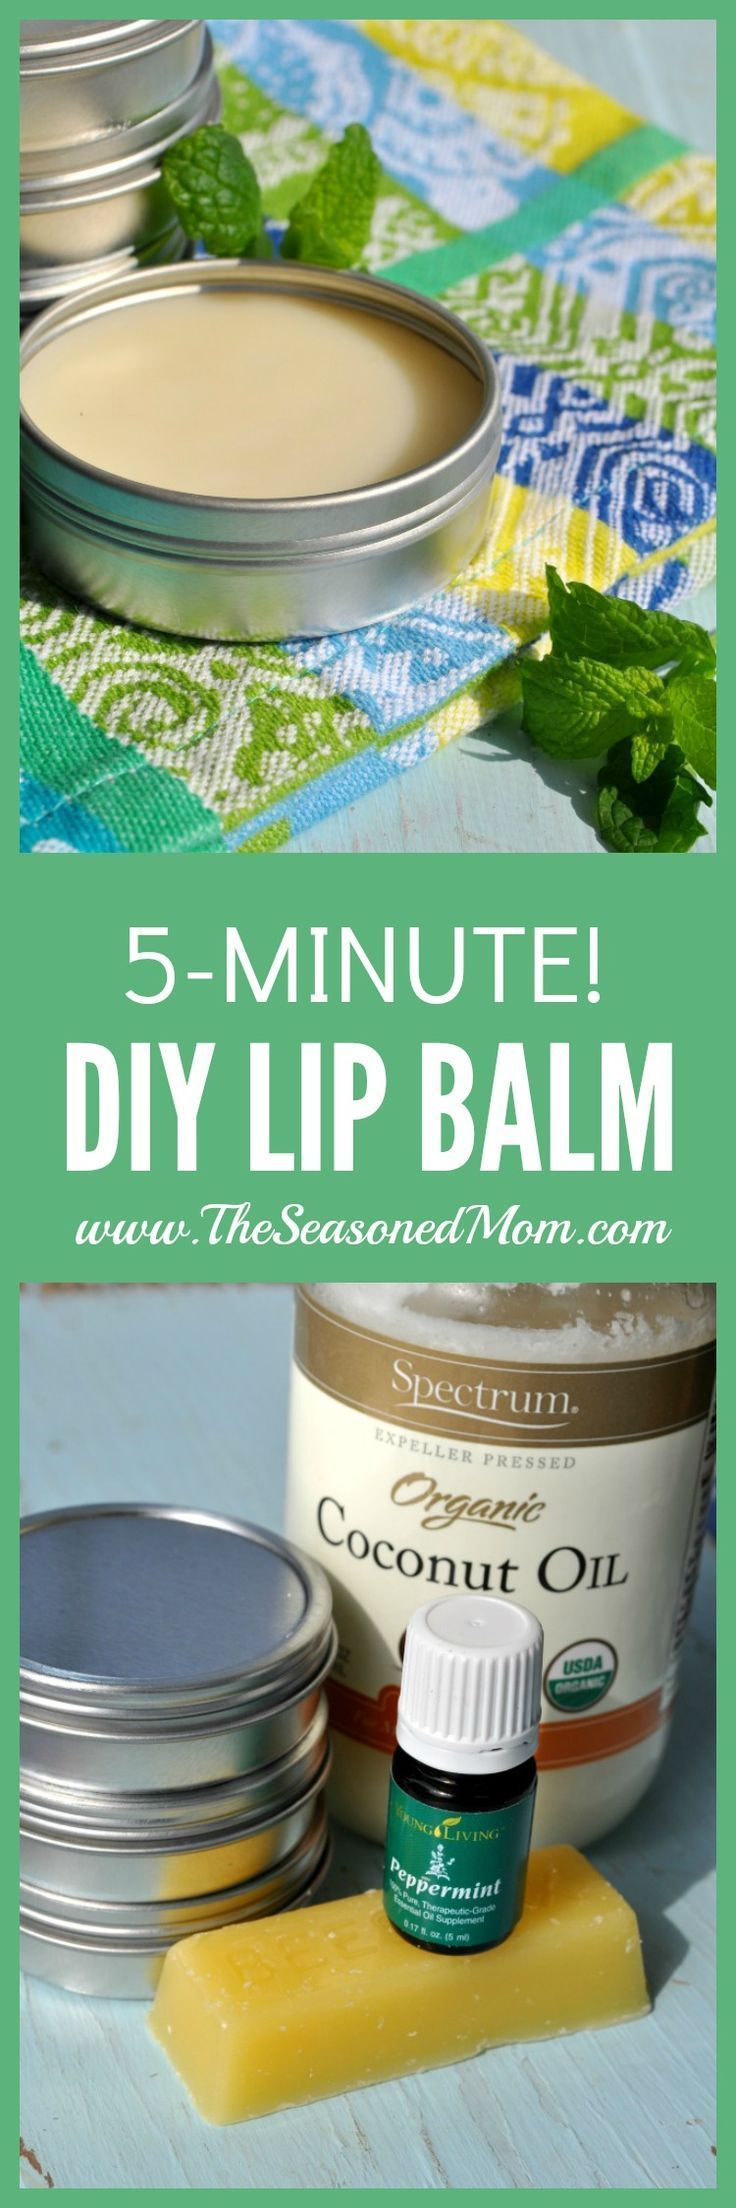 Balm christmas gift turn old eos containers into cool crafts ideas - Diy Lip Balm